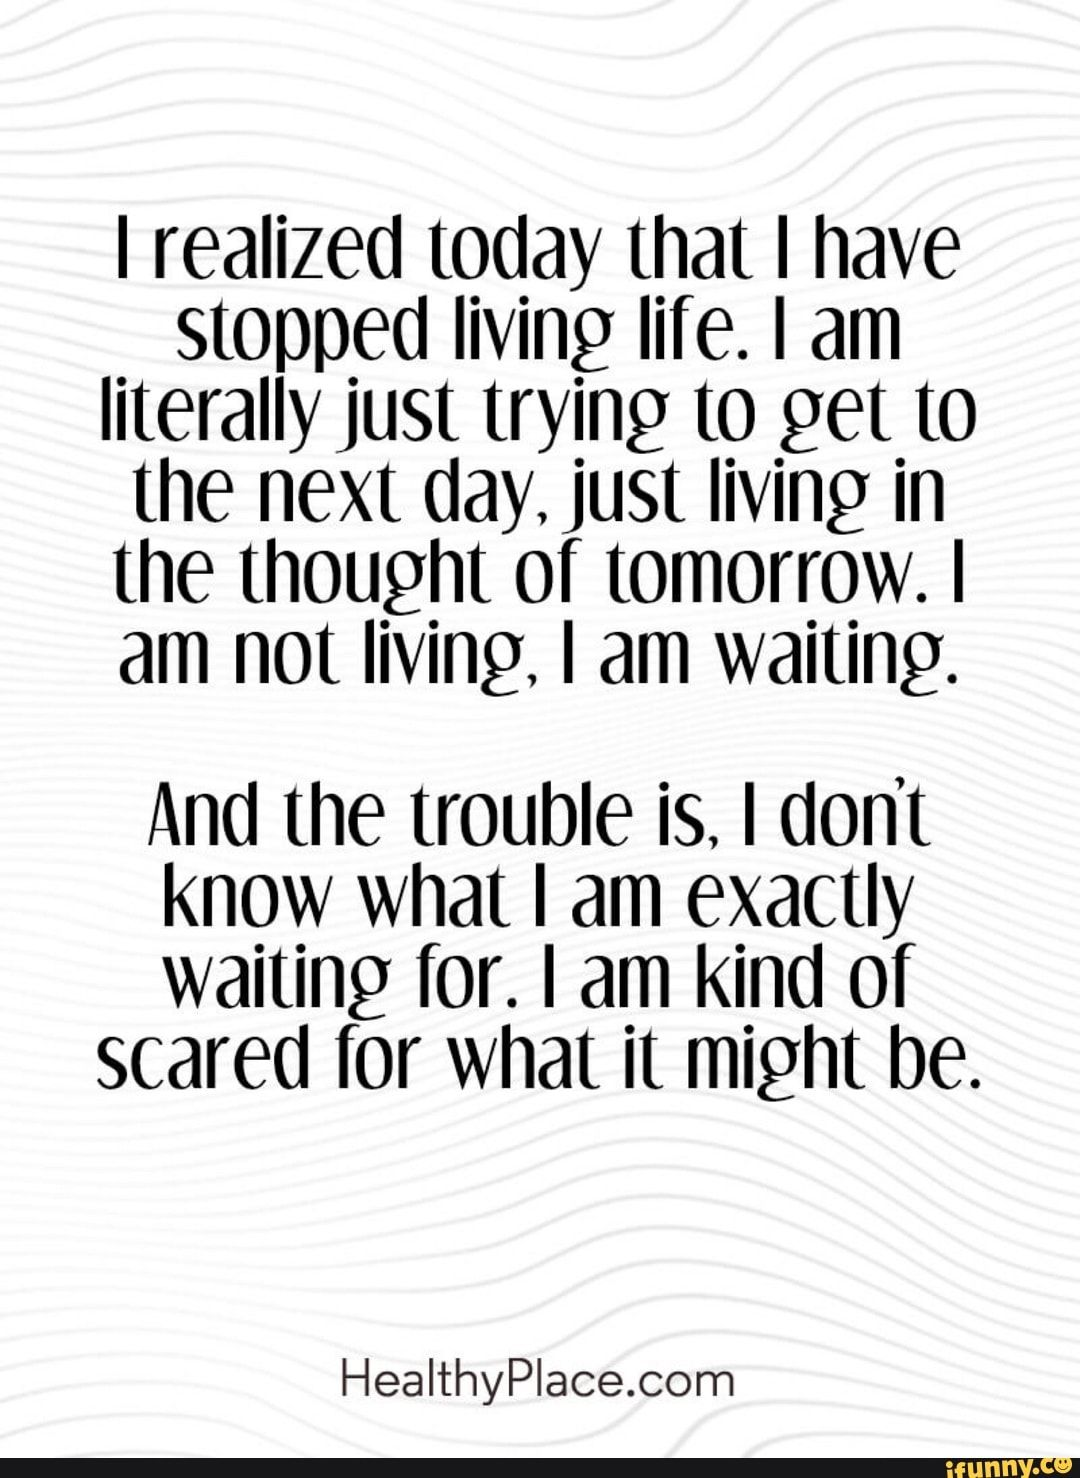 I Realized Today That I Have Stopped Living Life I Am Iiterallyjust Trying To Get T0 The Next Dayjust Living In The Thought Of Tomorrow I Am Not Living I Am